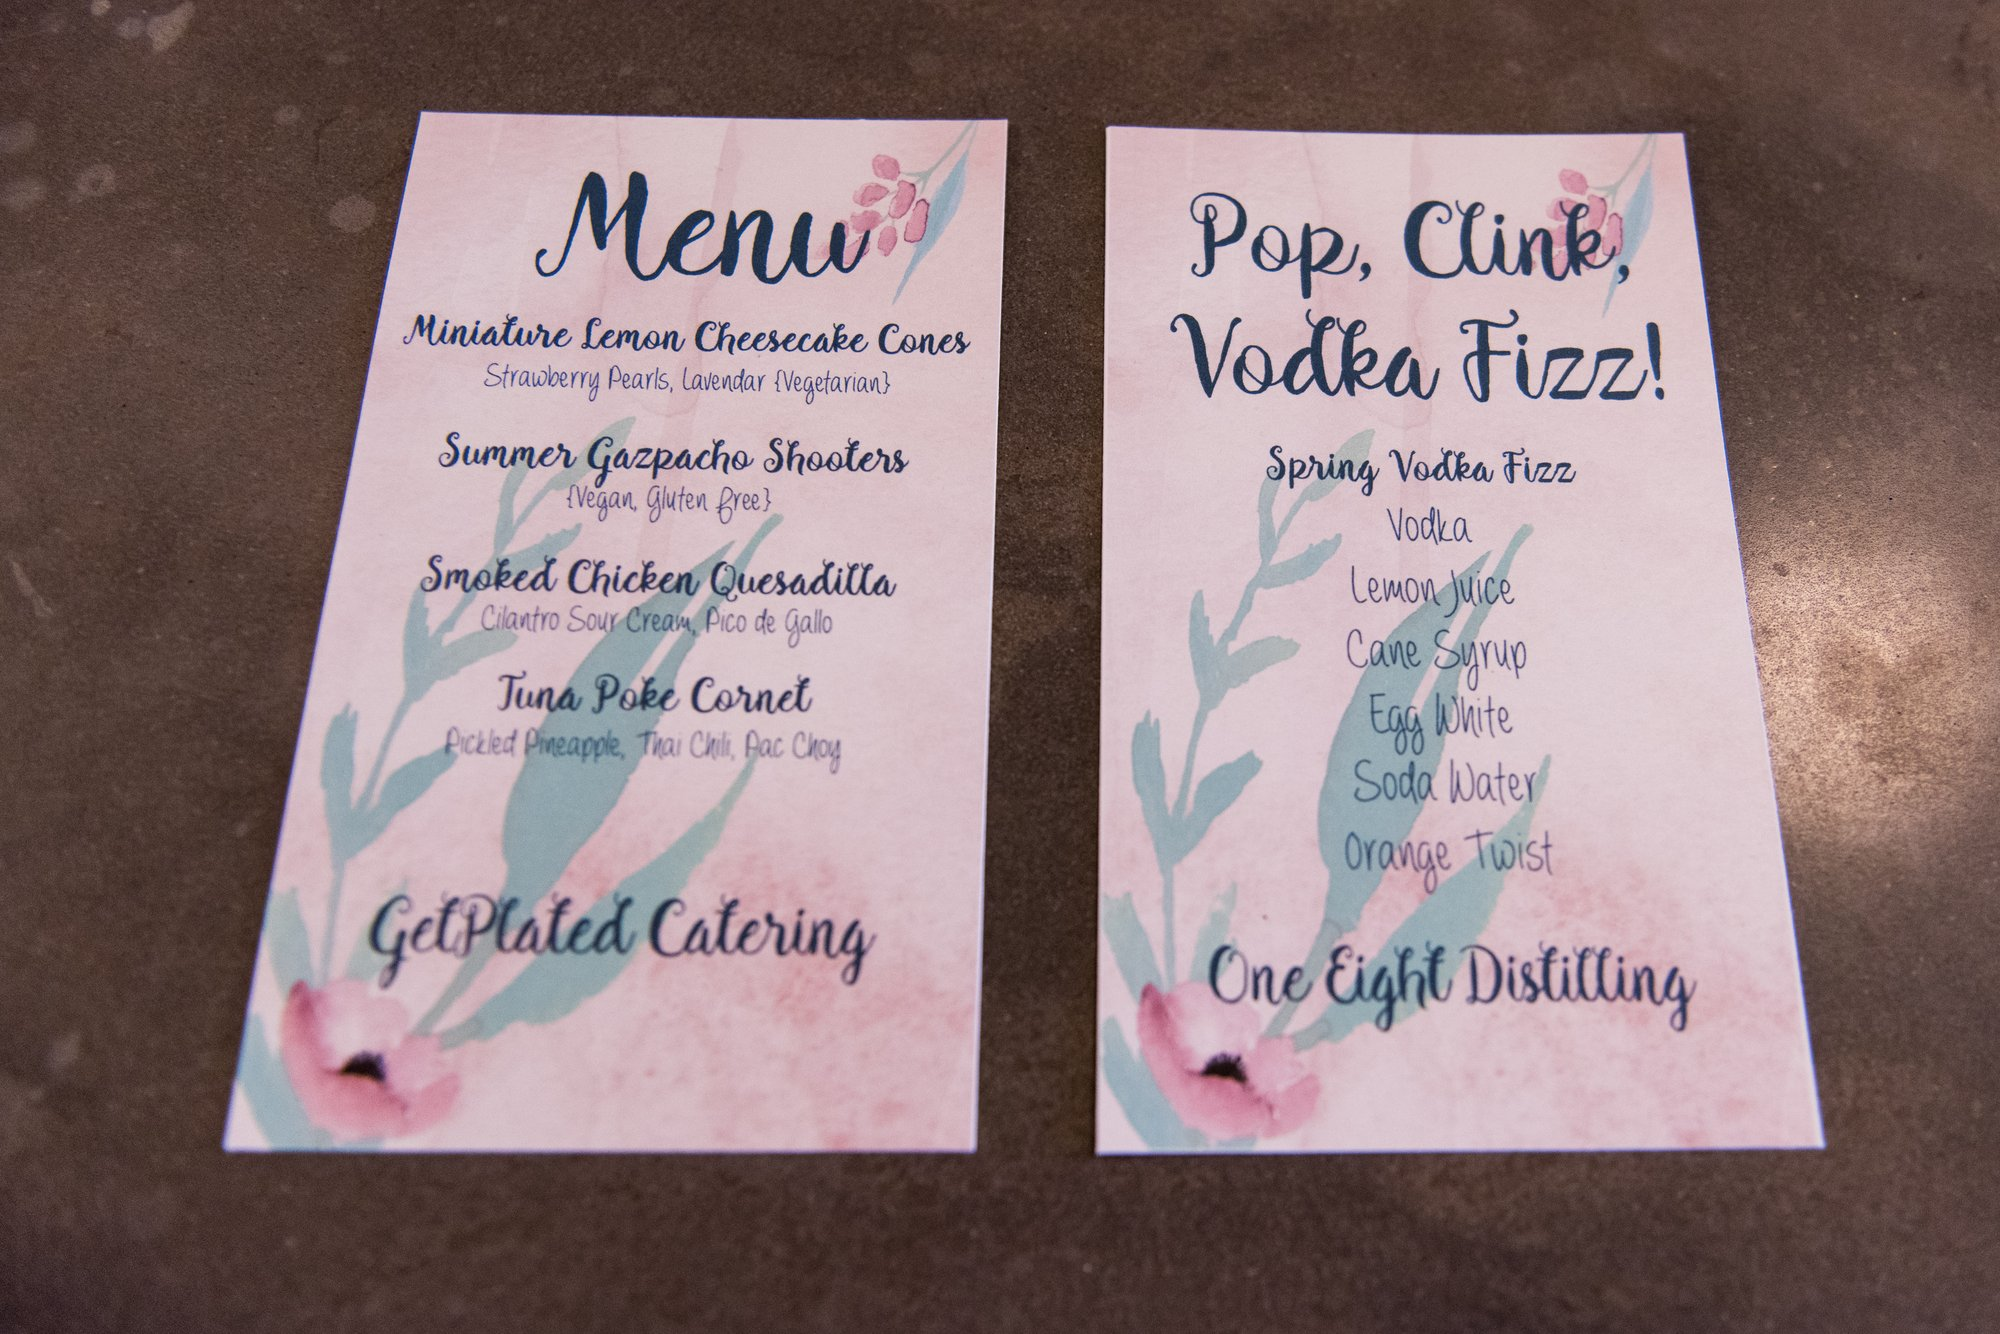 Washington, DC's Get Plated catering menu, and One Eight Distilling's drink menu - Vodka